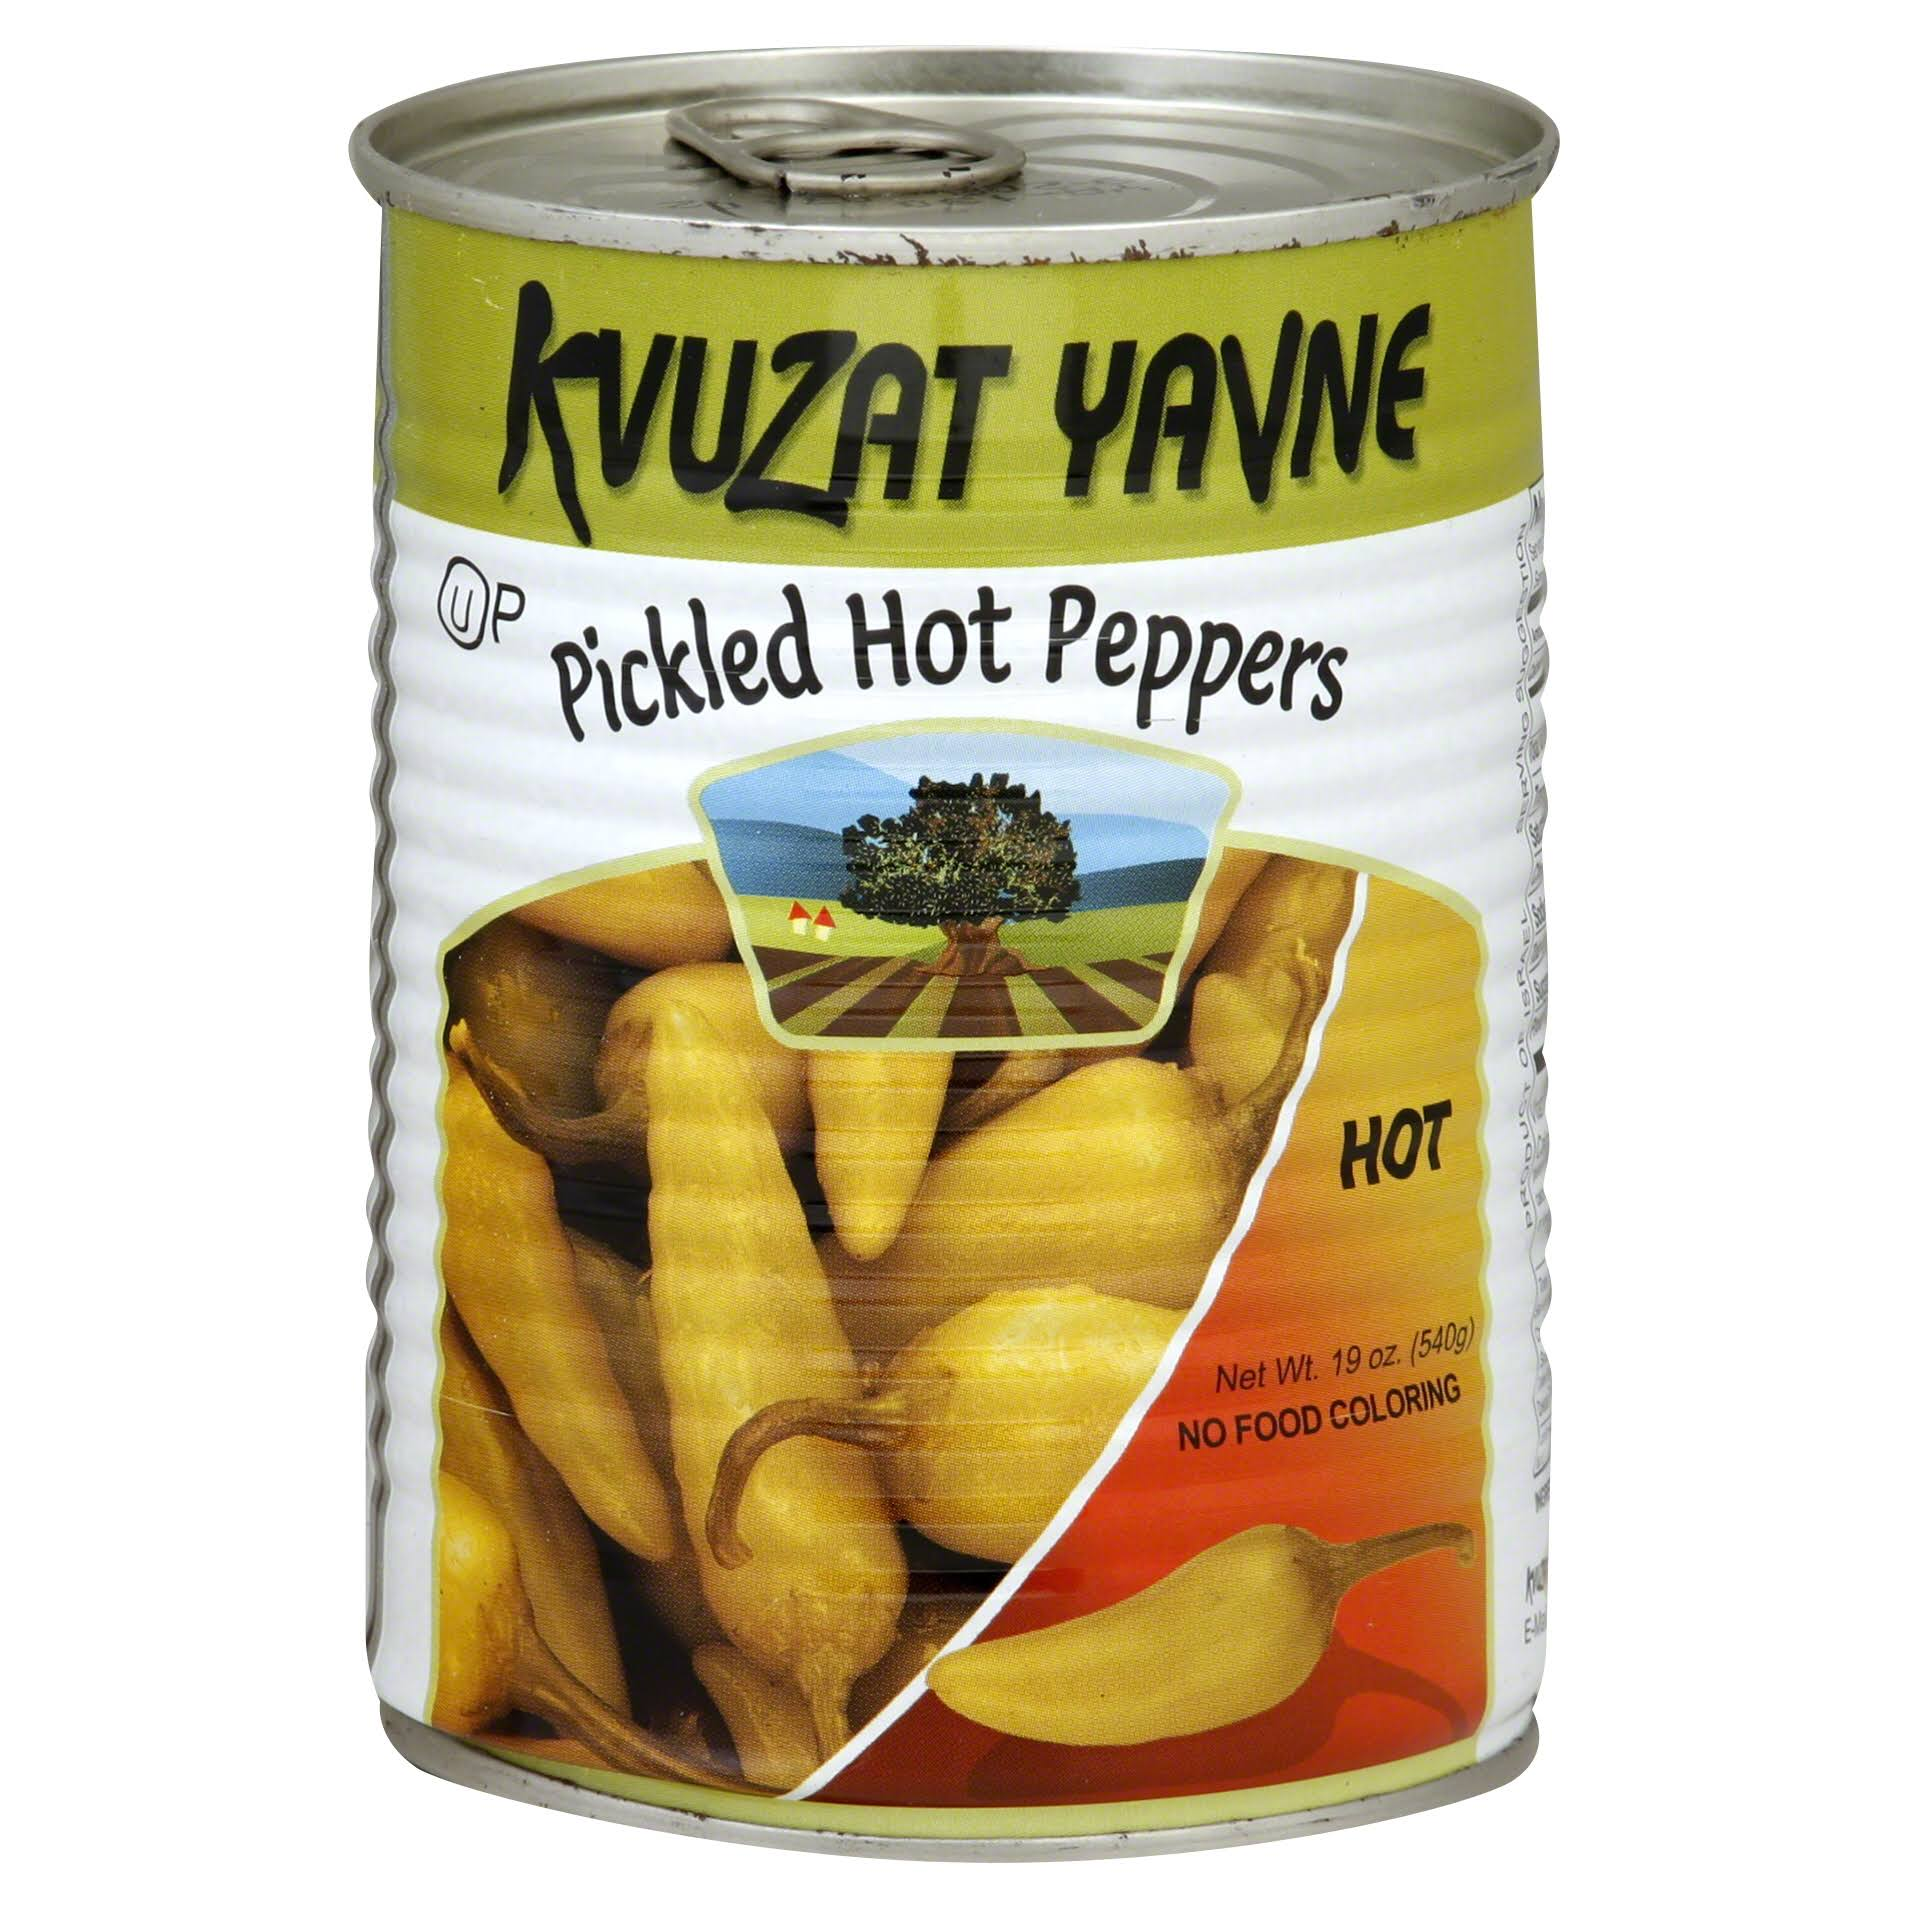 Kvuzat Yavne Hot Peppers, Pickled - 19 oz